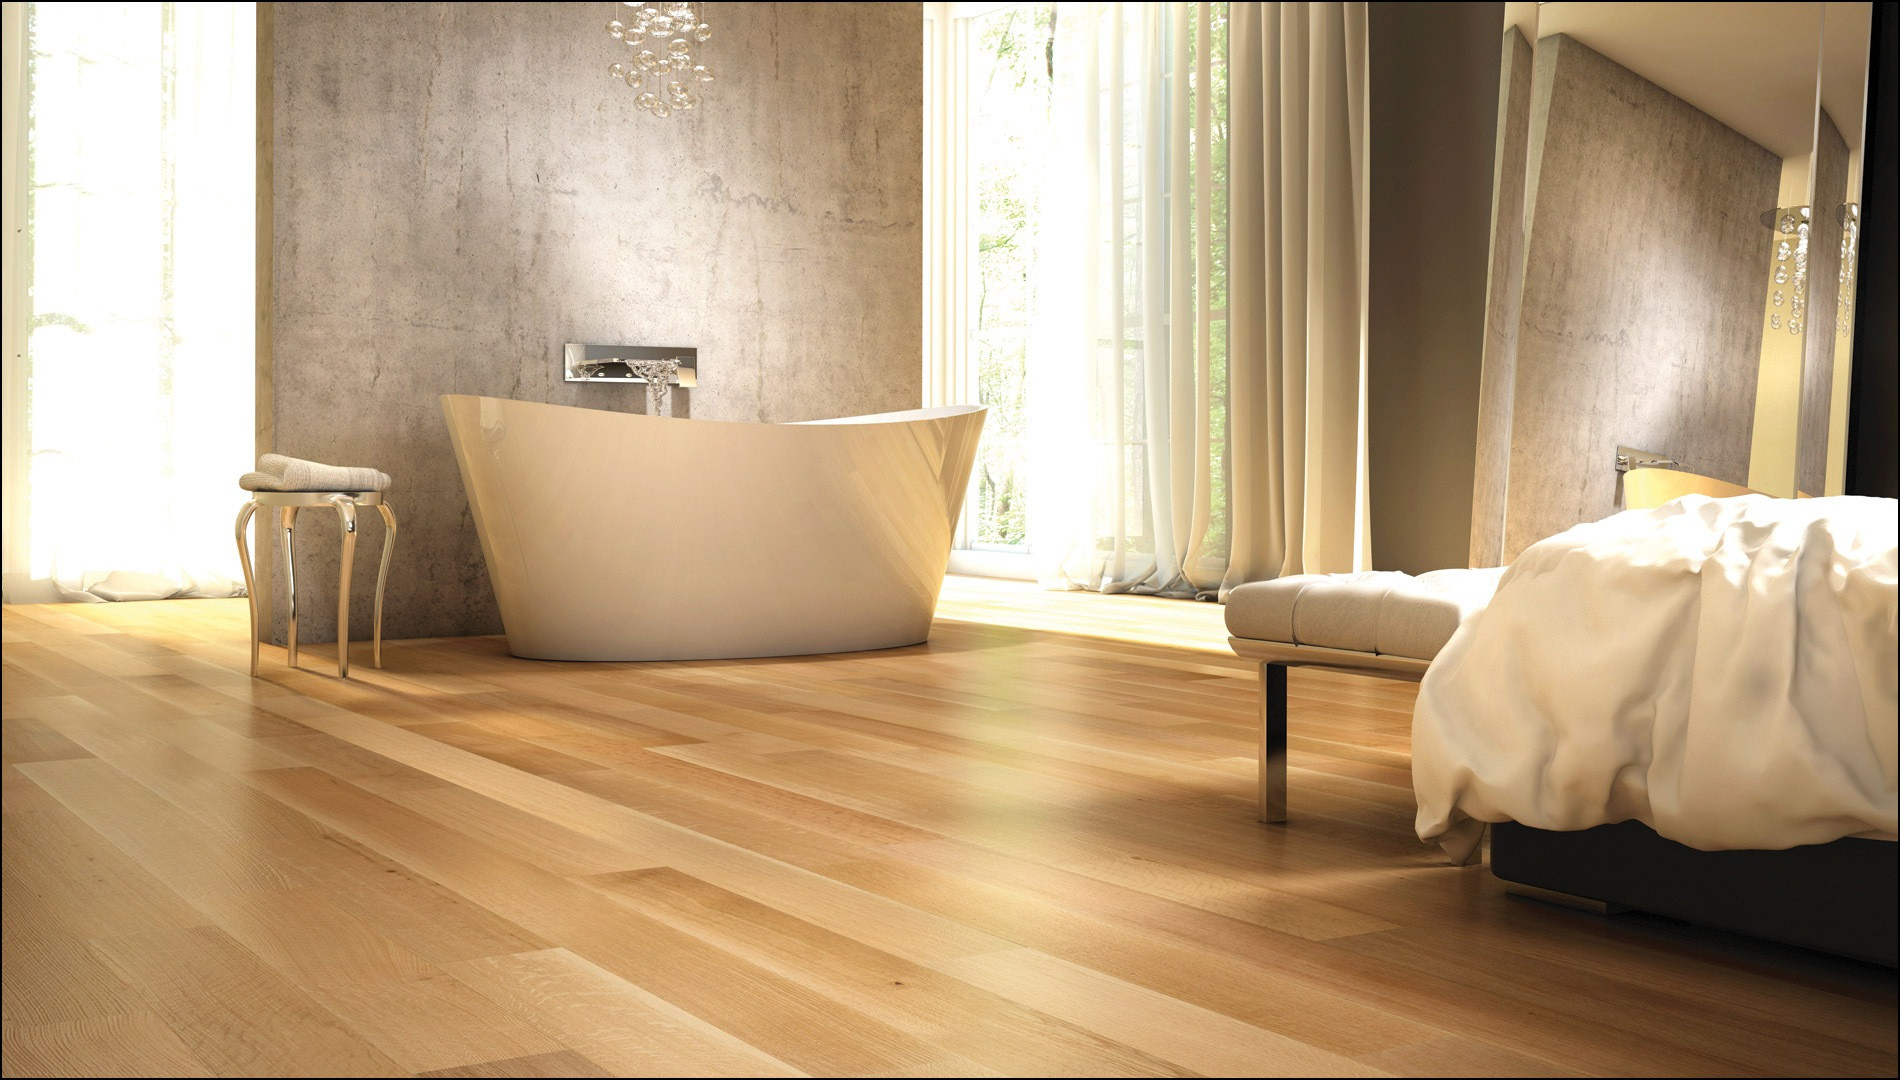 wide plank hardwood flooring cost of wide plank flooring ideas pertaining to wide plank white oak wood flooring photographies natural white oak flooring of wide plank white oak